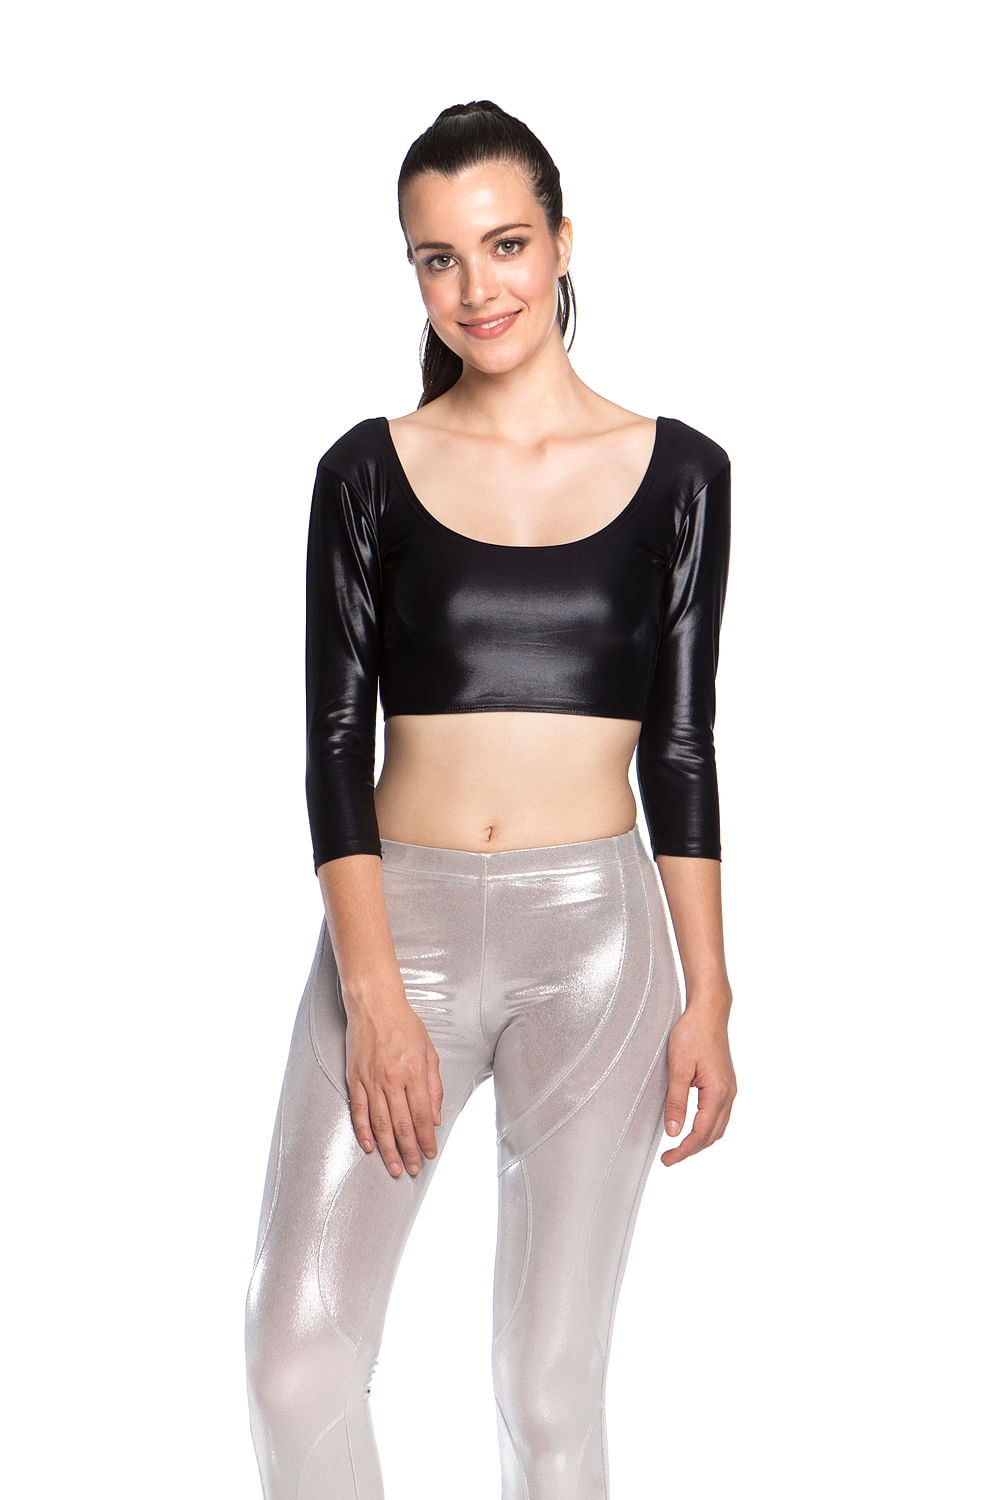 top-cropped-fitness-cirre-ballerine-1-